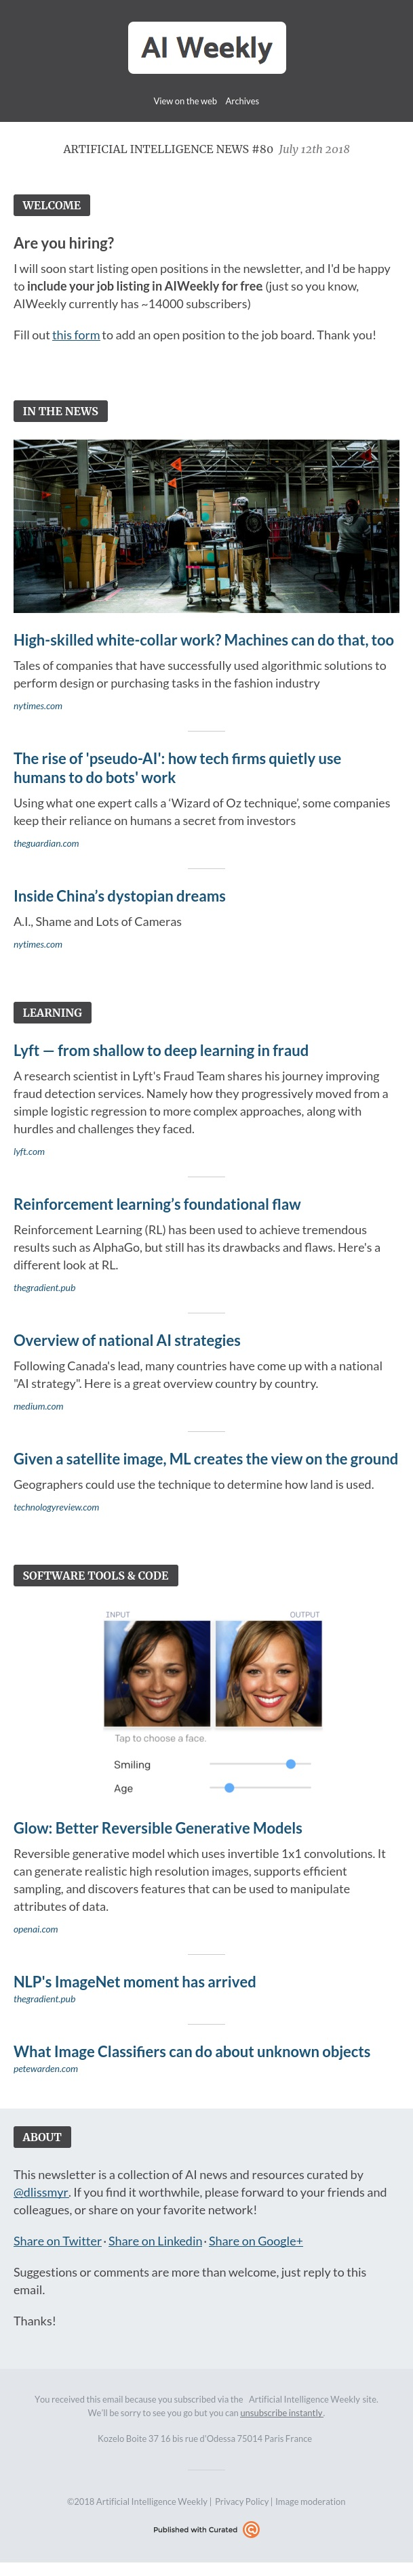 Artificial Intelligence Weekly - Artificial Intelligence News #80